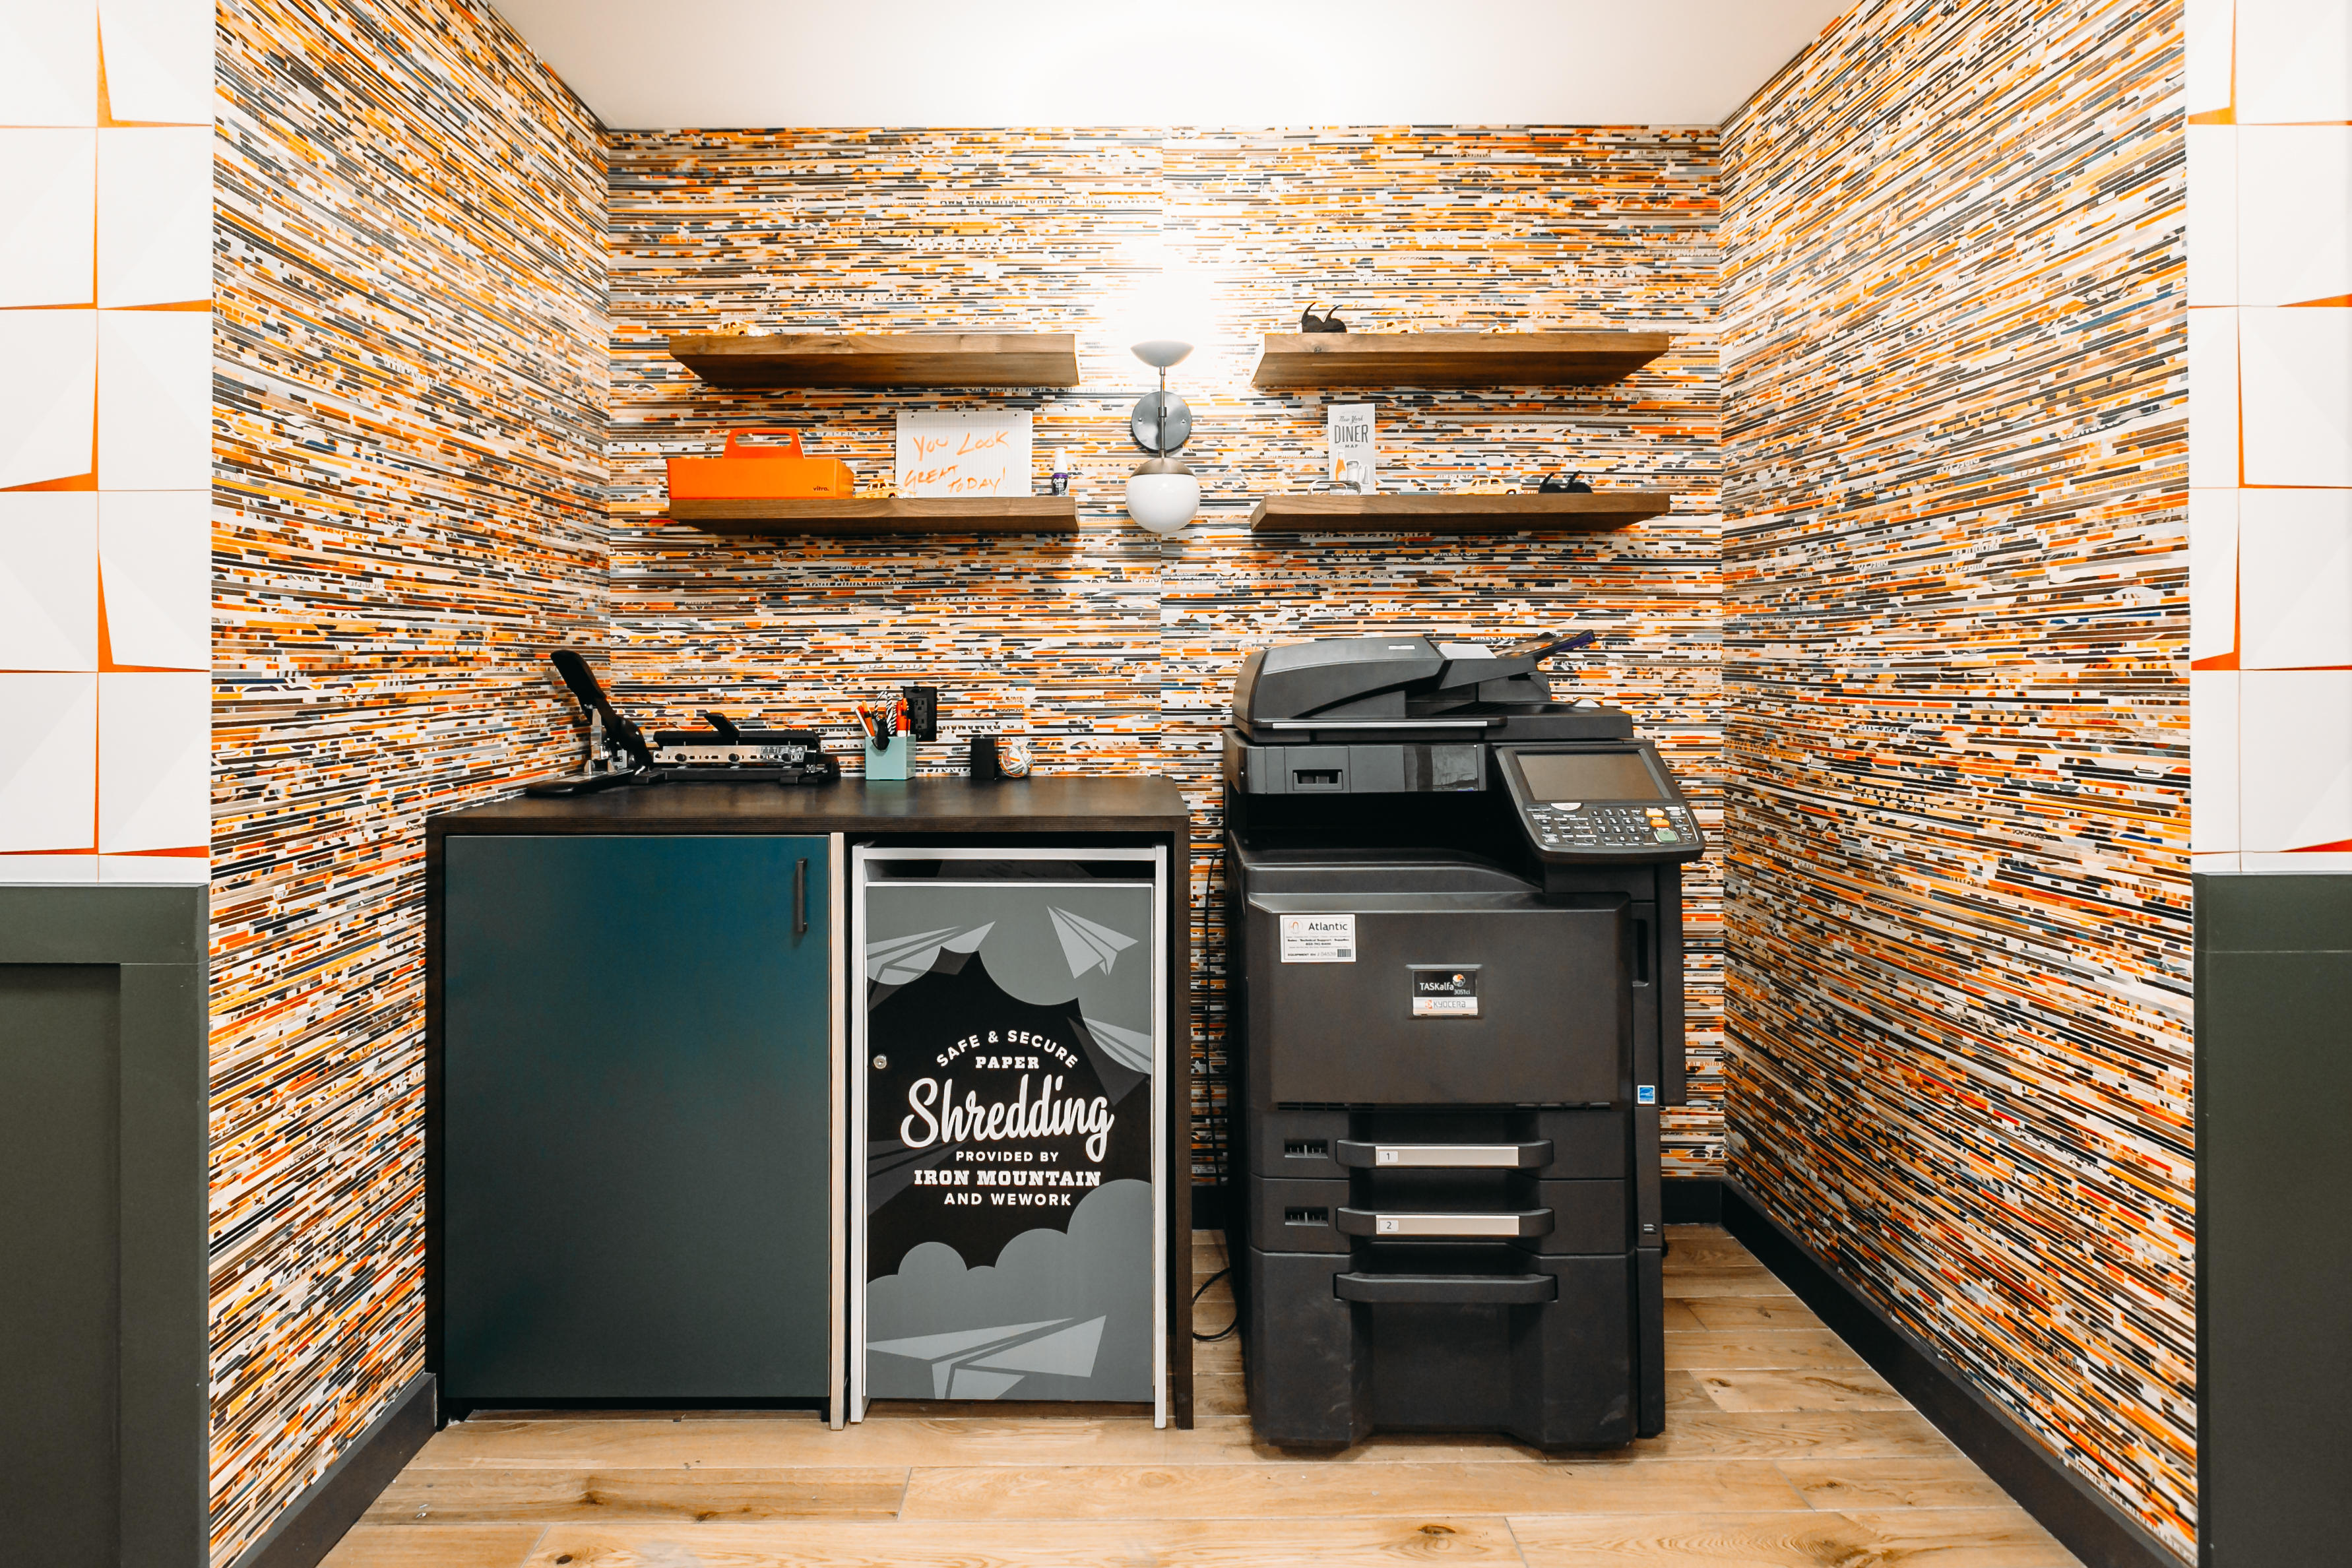 Example shown: Printing Nook (Times Square, New York City) WeWork 33 Queen St London 020 3695 7895